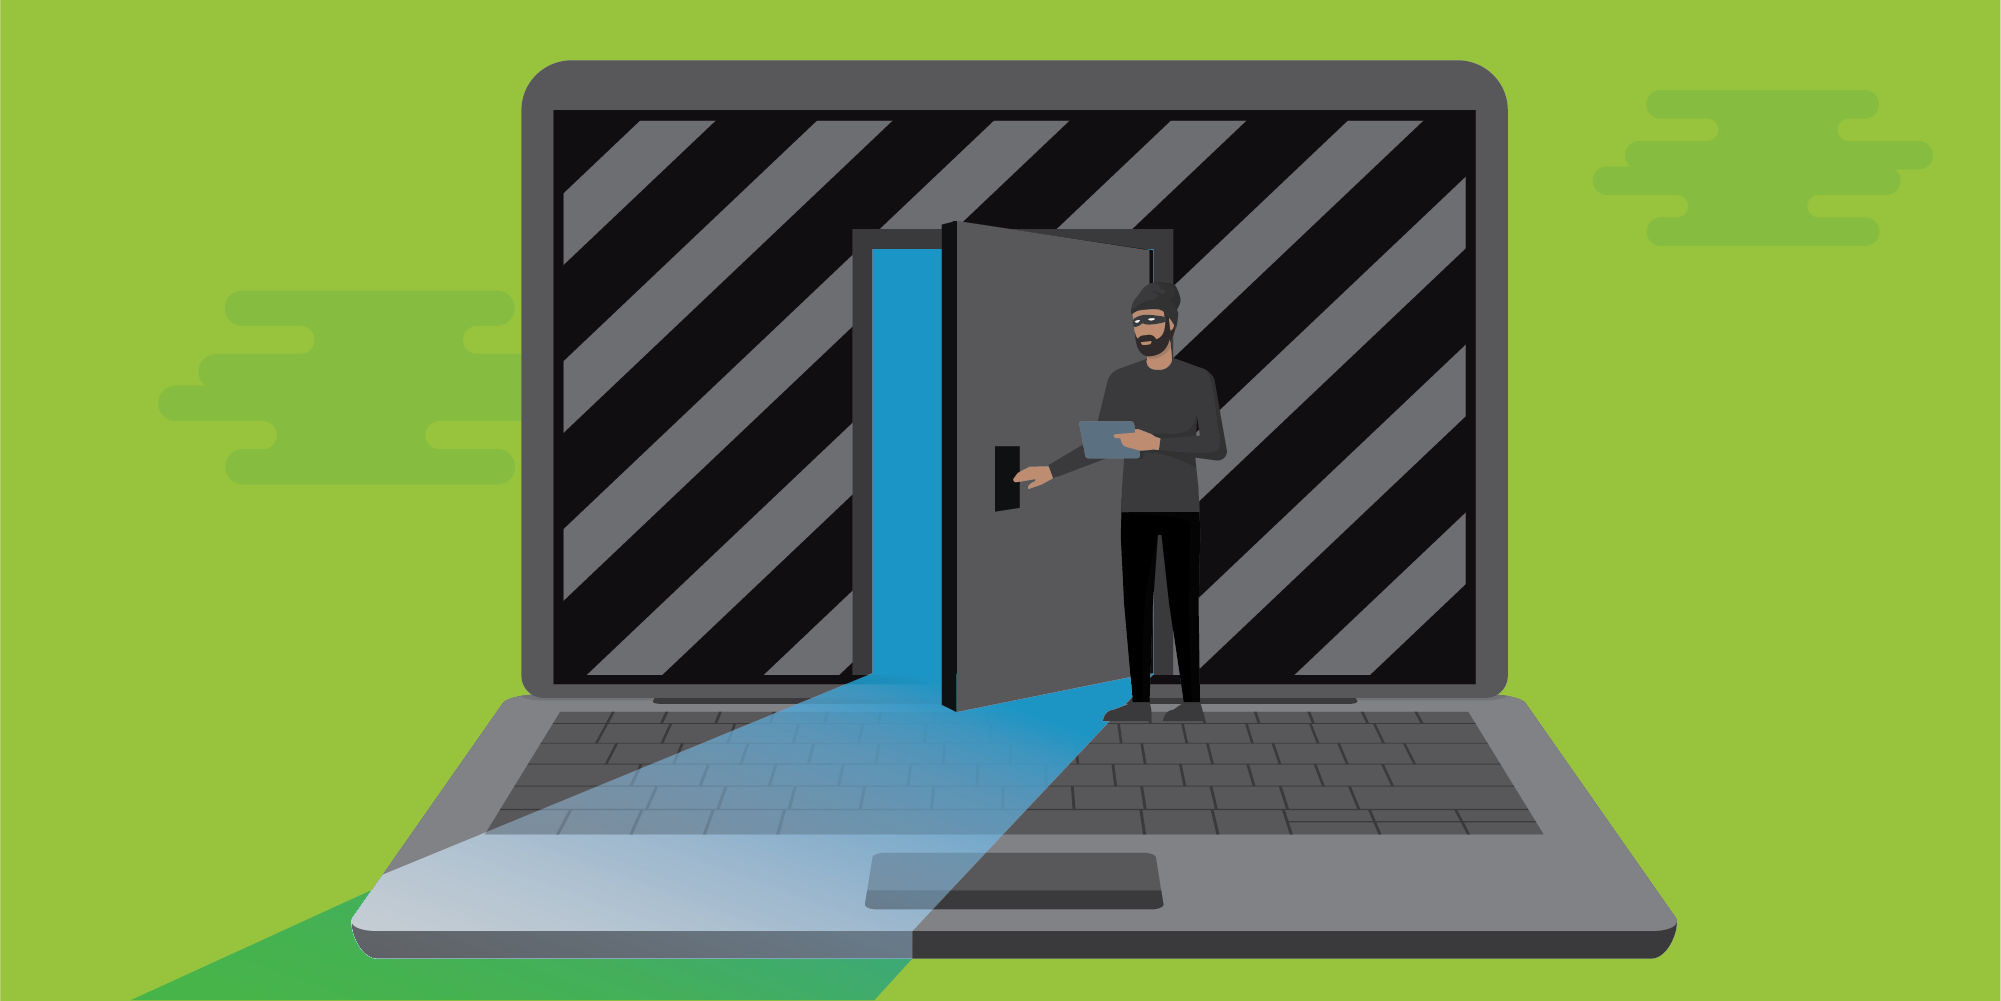 Cybercriminals, conceptualized by this image of a man illicitly opening a door into a computer, use techniques such as fast flux, described here, to evade detection and law enforcement takedowns.